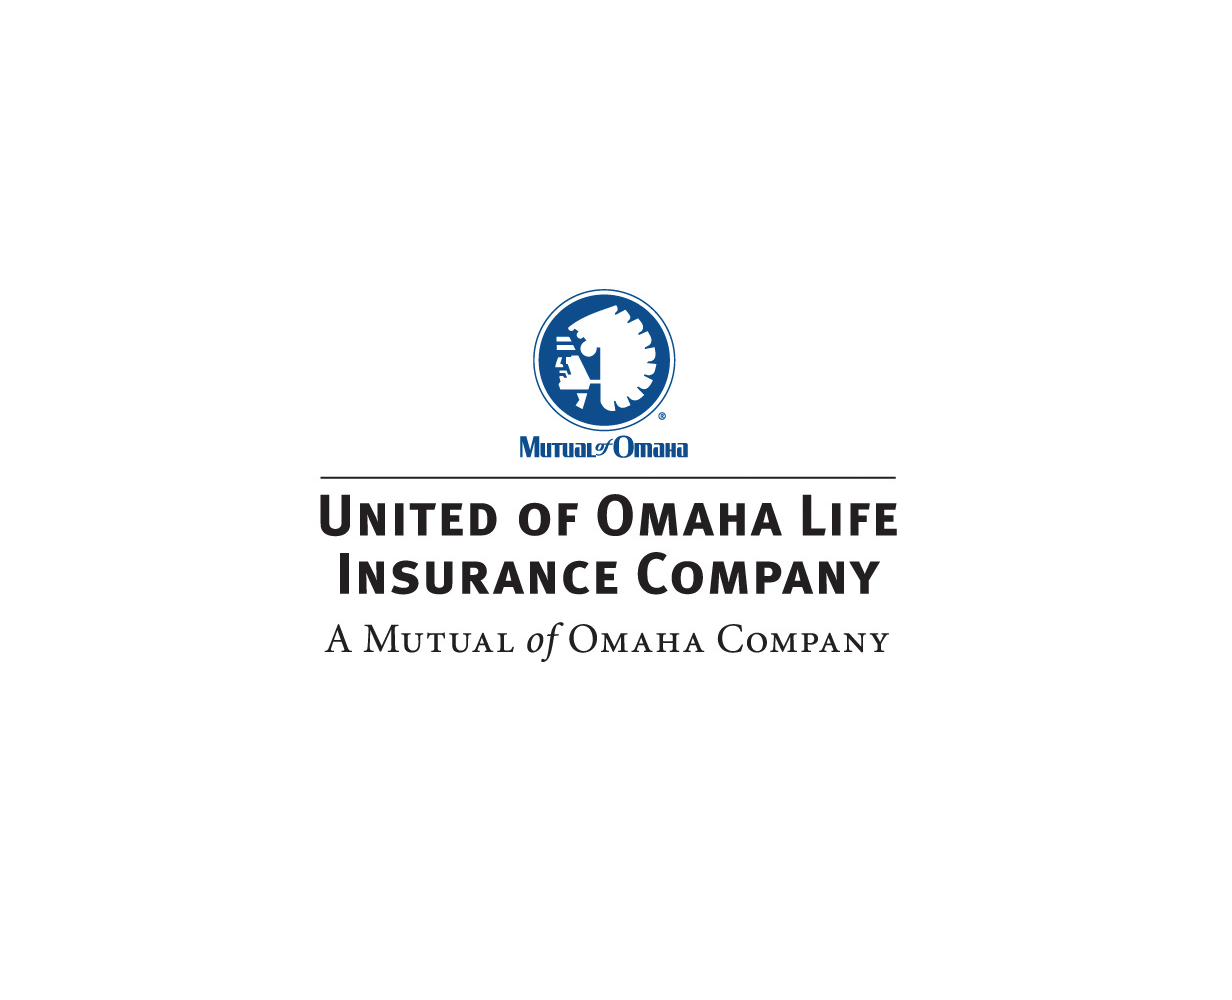 Products - United of Omaha Life Insurance Company